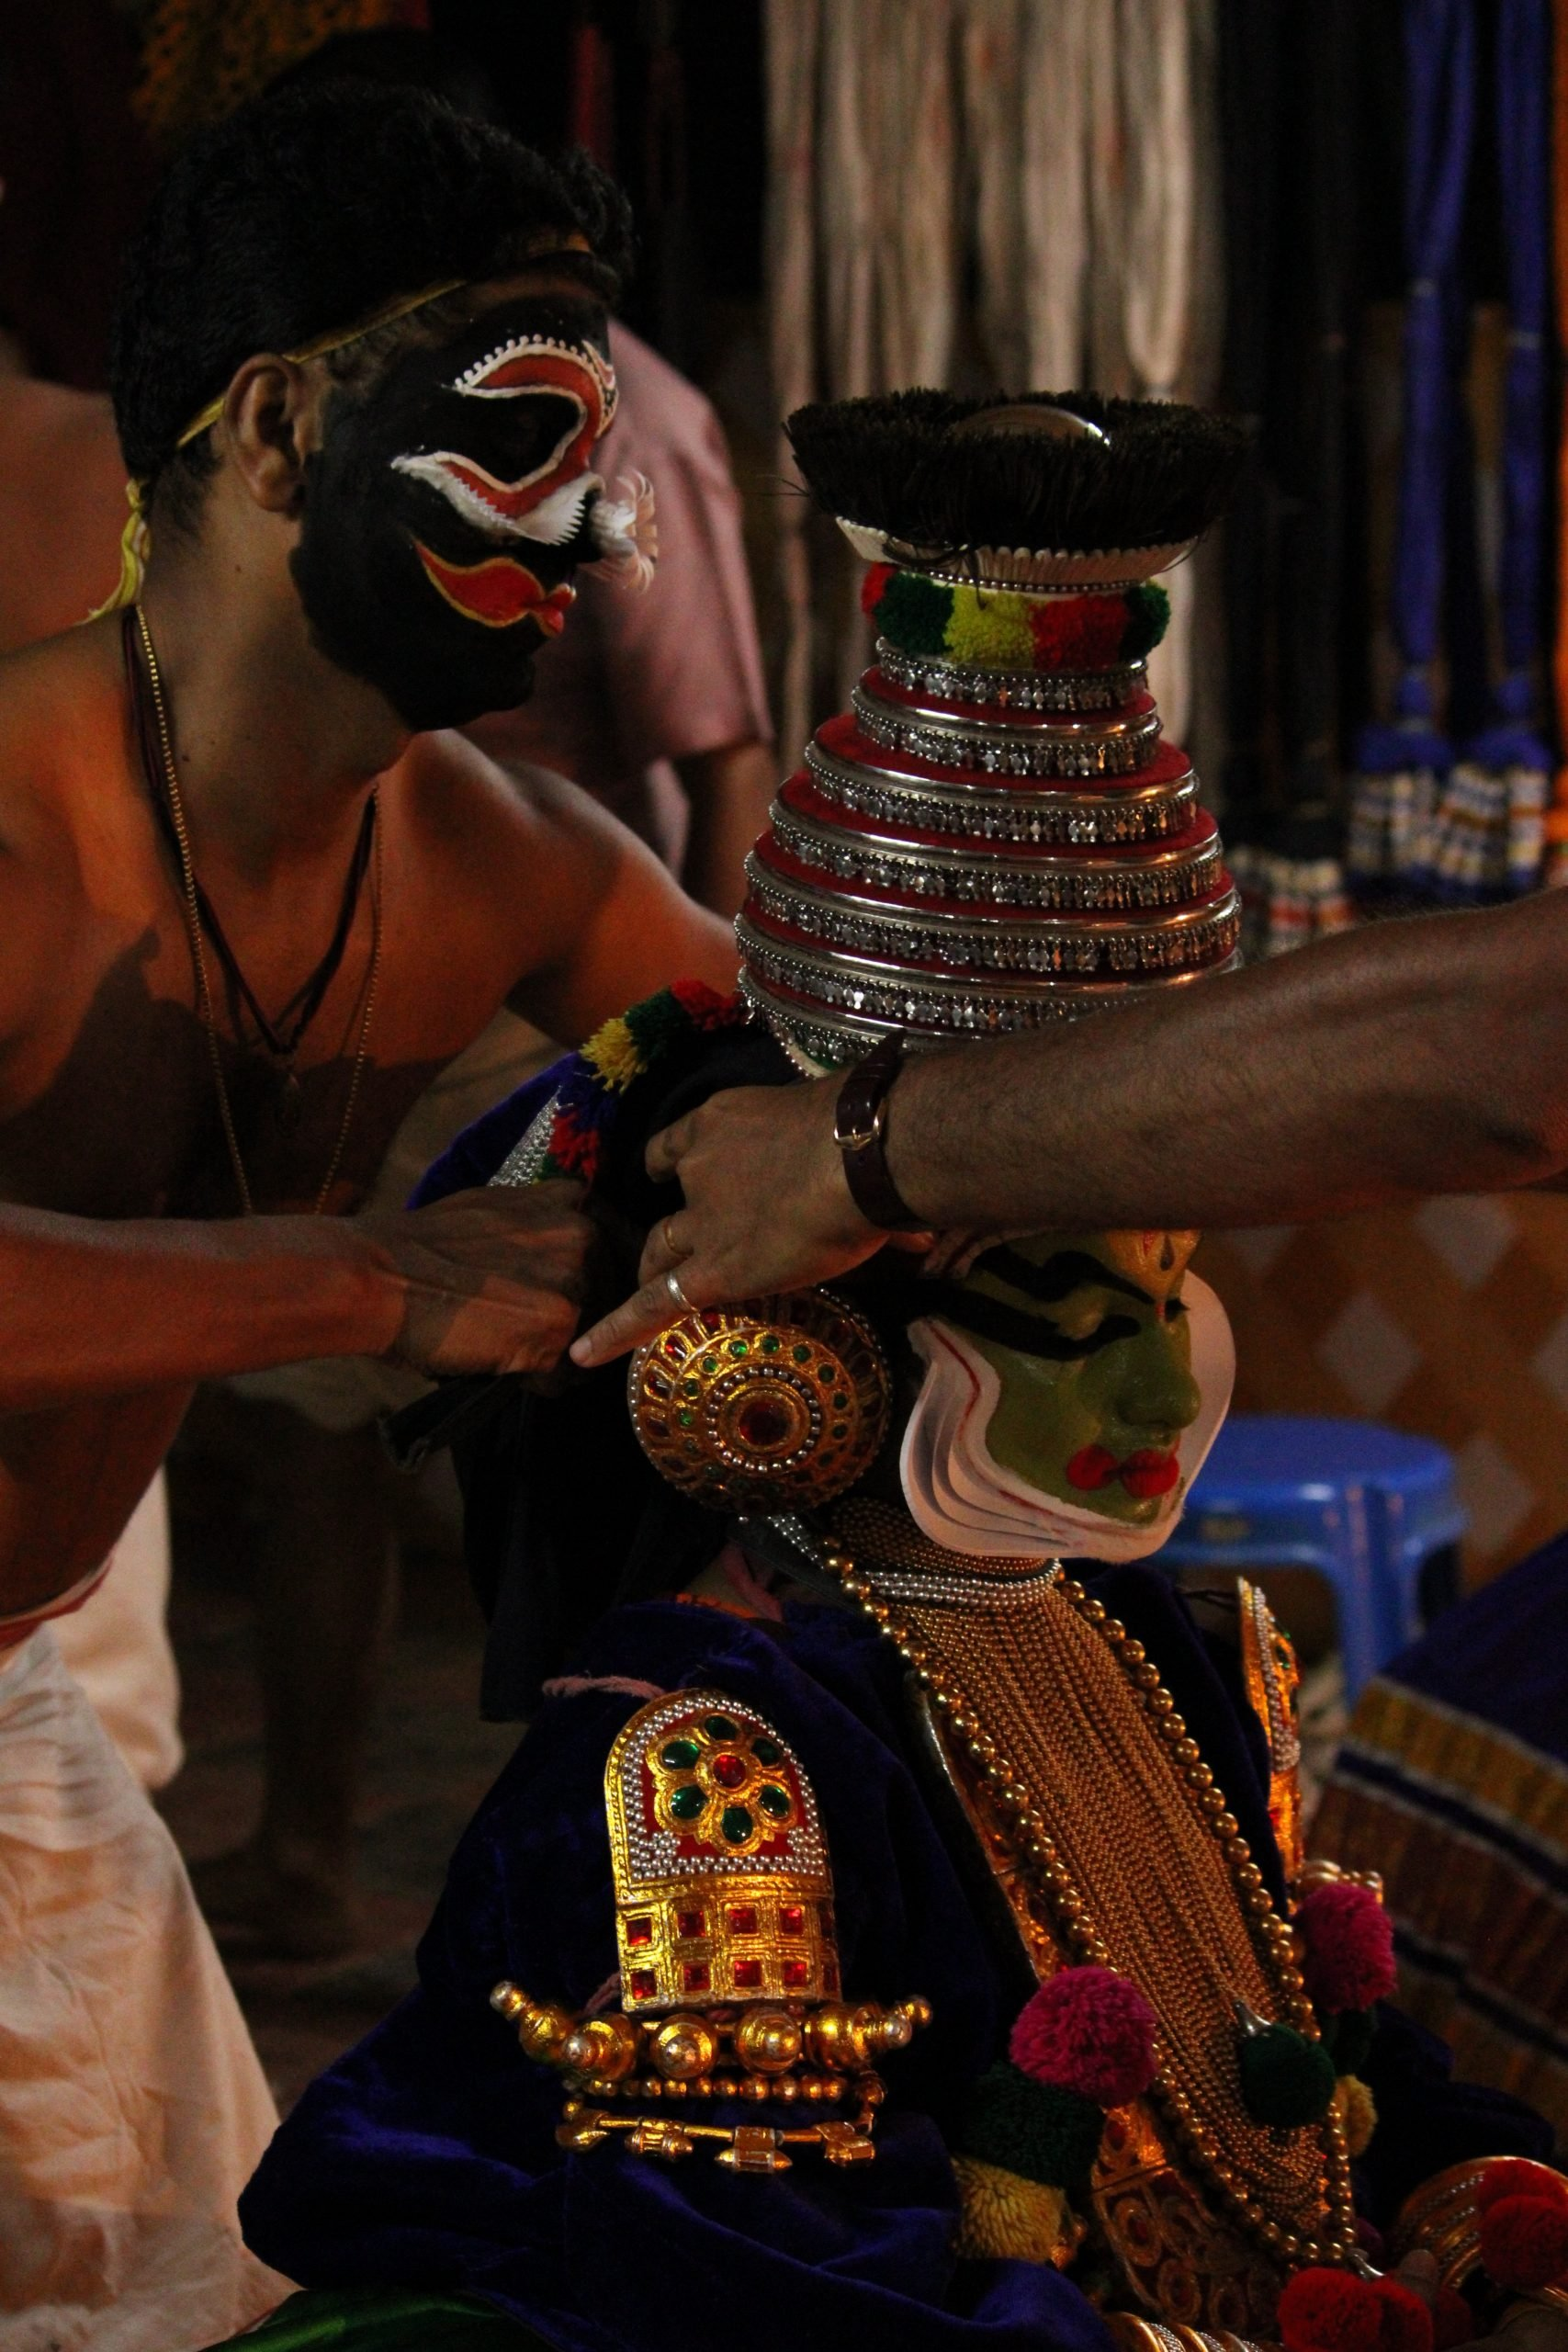 Portrait of a kathakali artist getting ready